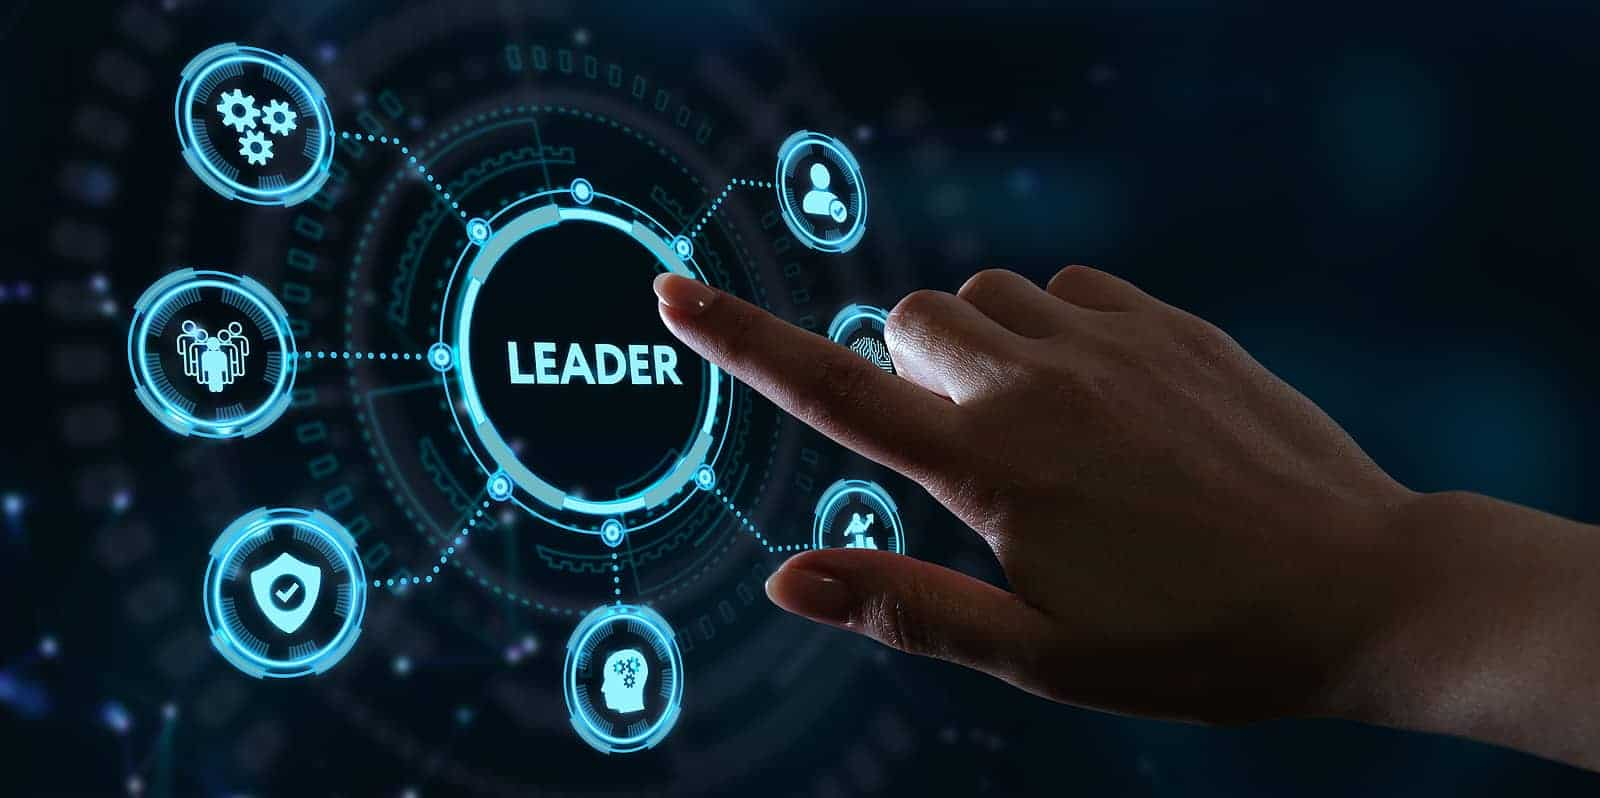 The Digital Leader